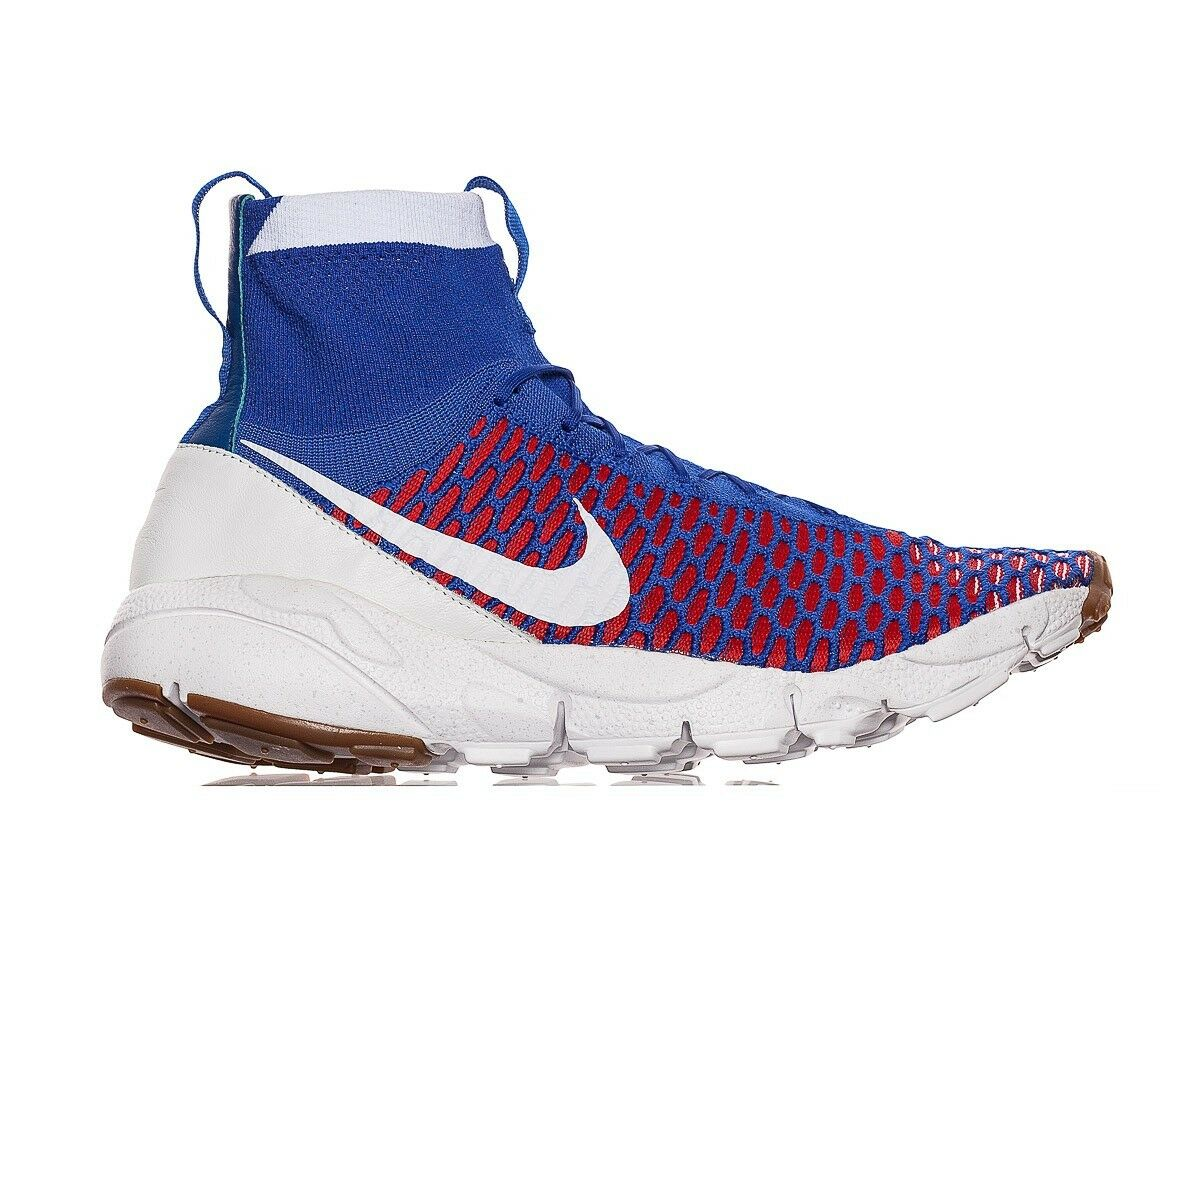 Nike Air Footscape Magista SP Royal Fragment SB 7.5 Non HTM Mercurial Inspired